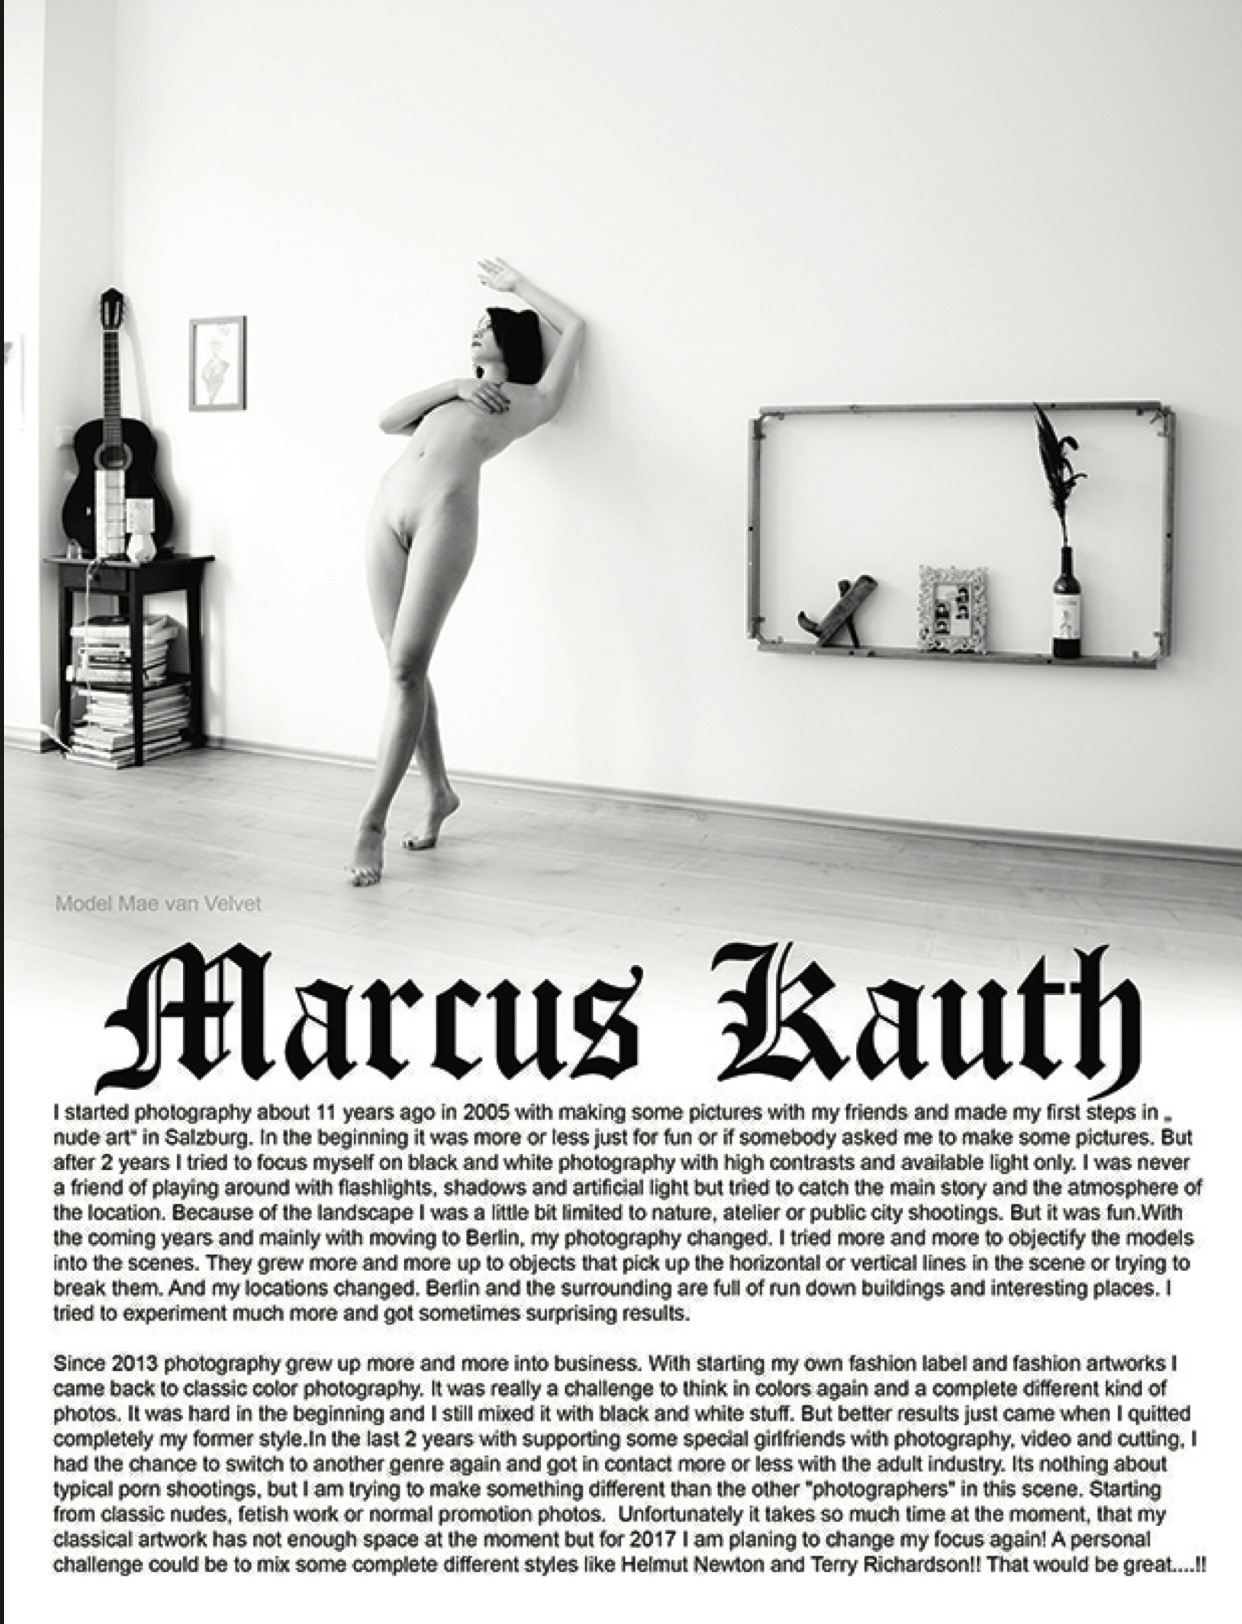 Photographer Marcus Kauth featured on the Erotica side